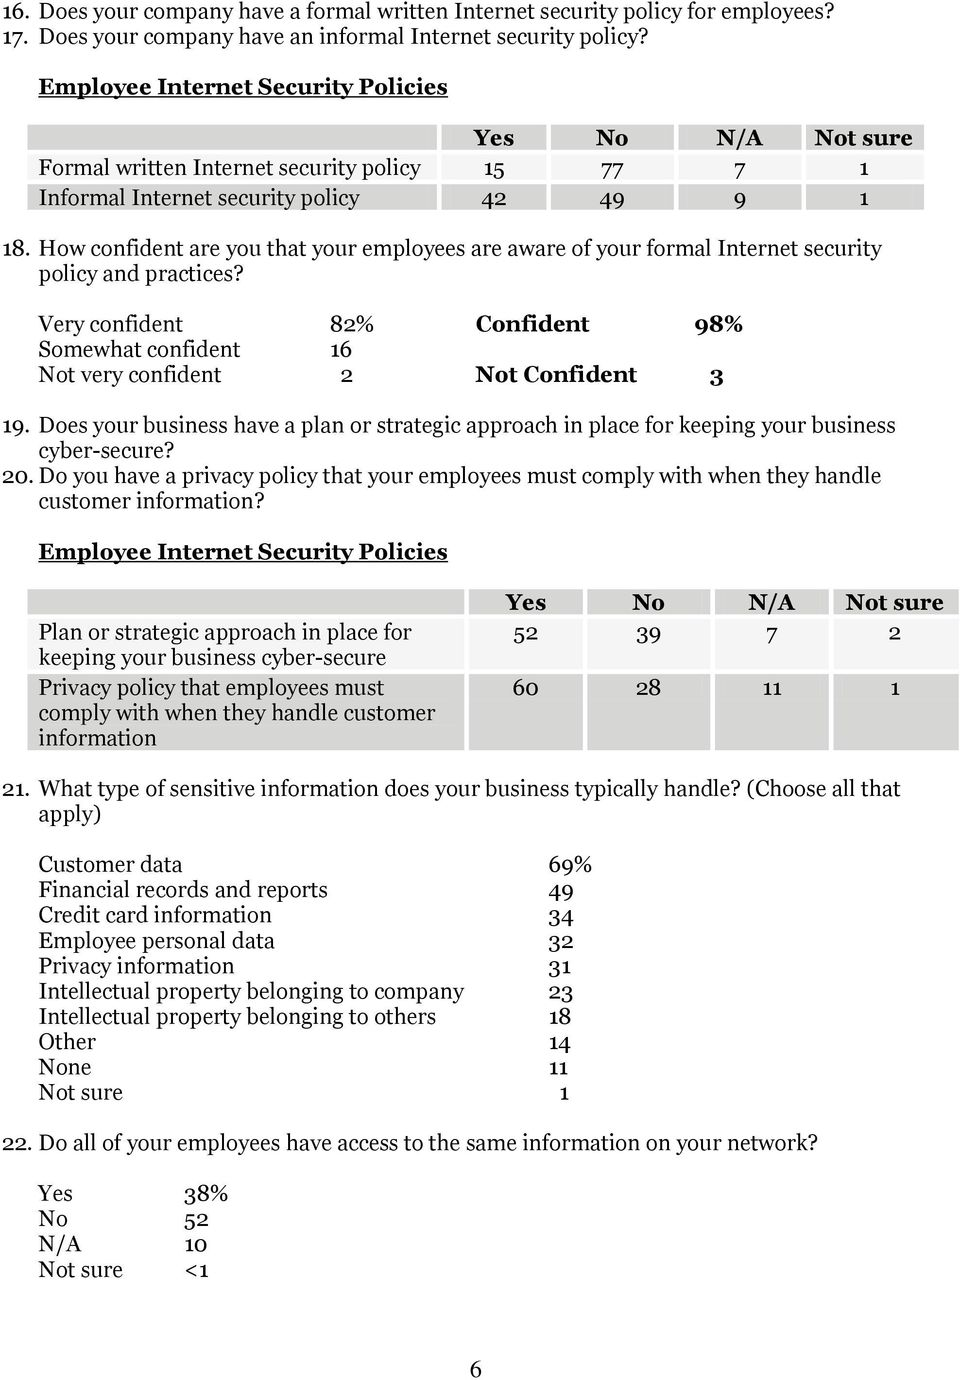 How confident are you that your employees are aware of your formal Internet security policy and practices?